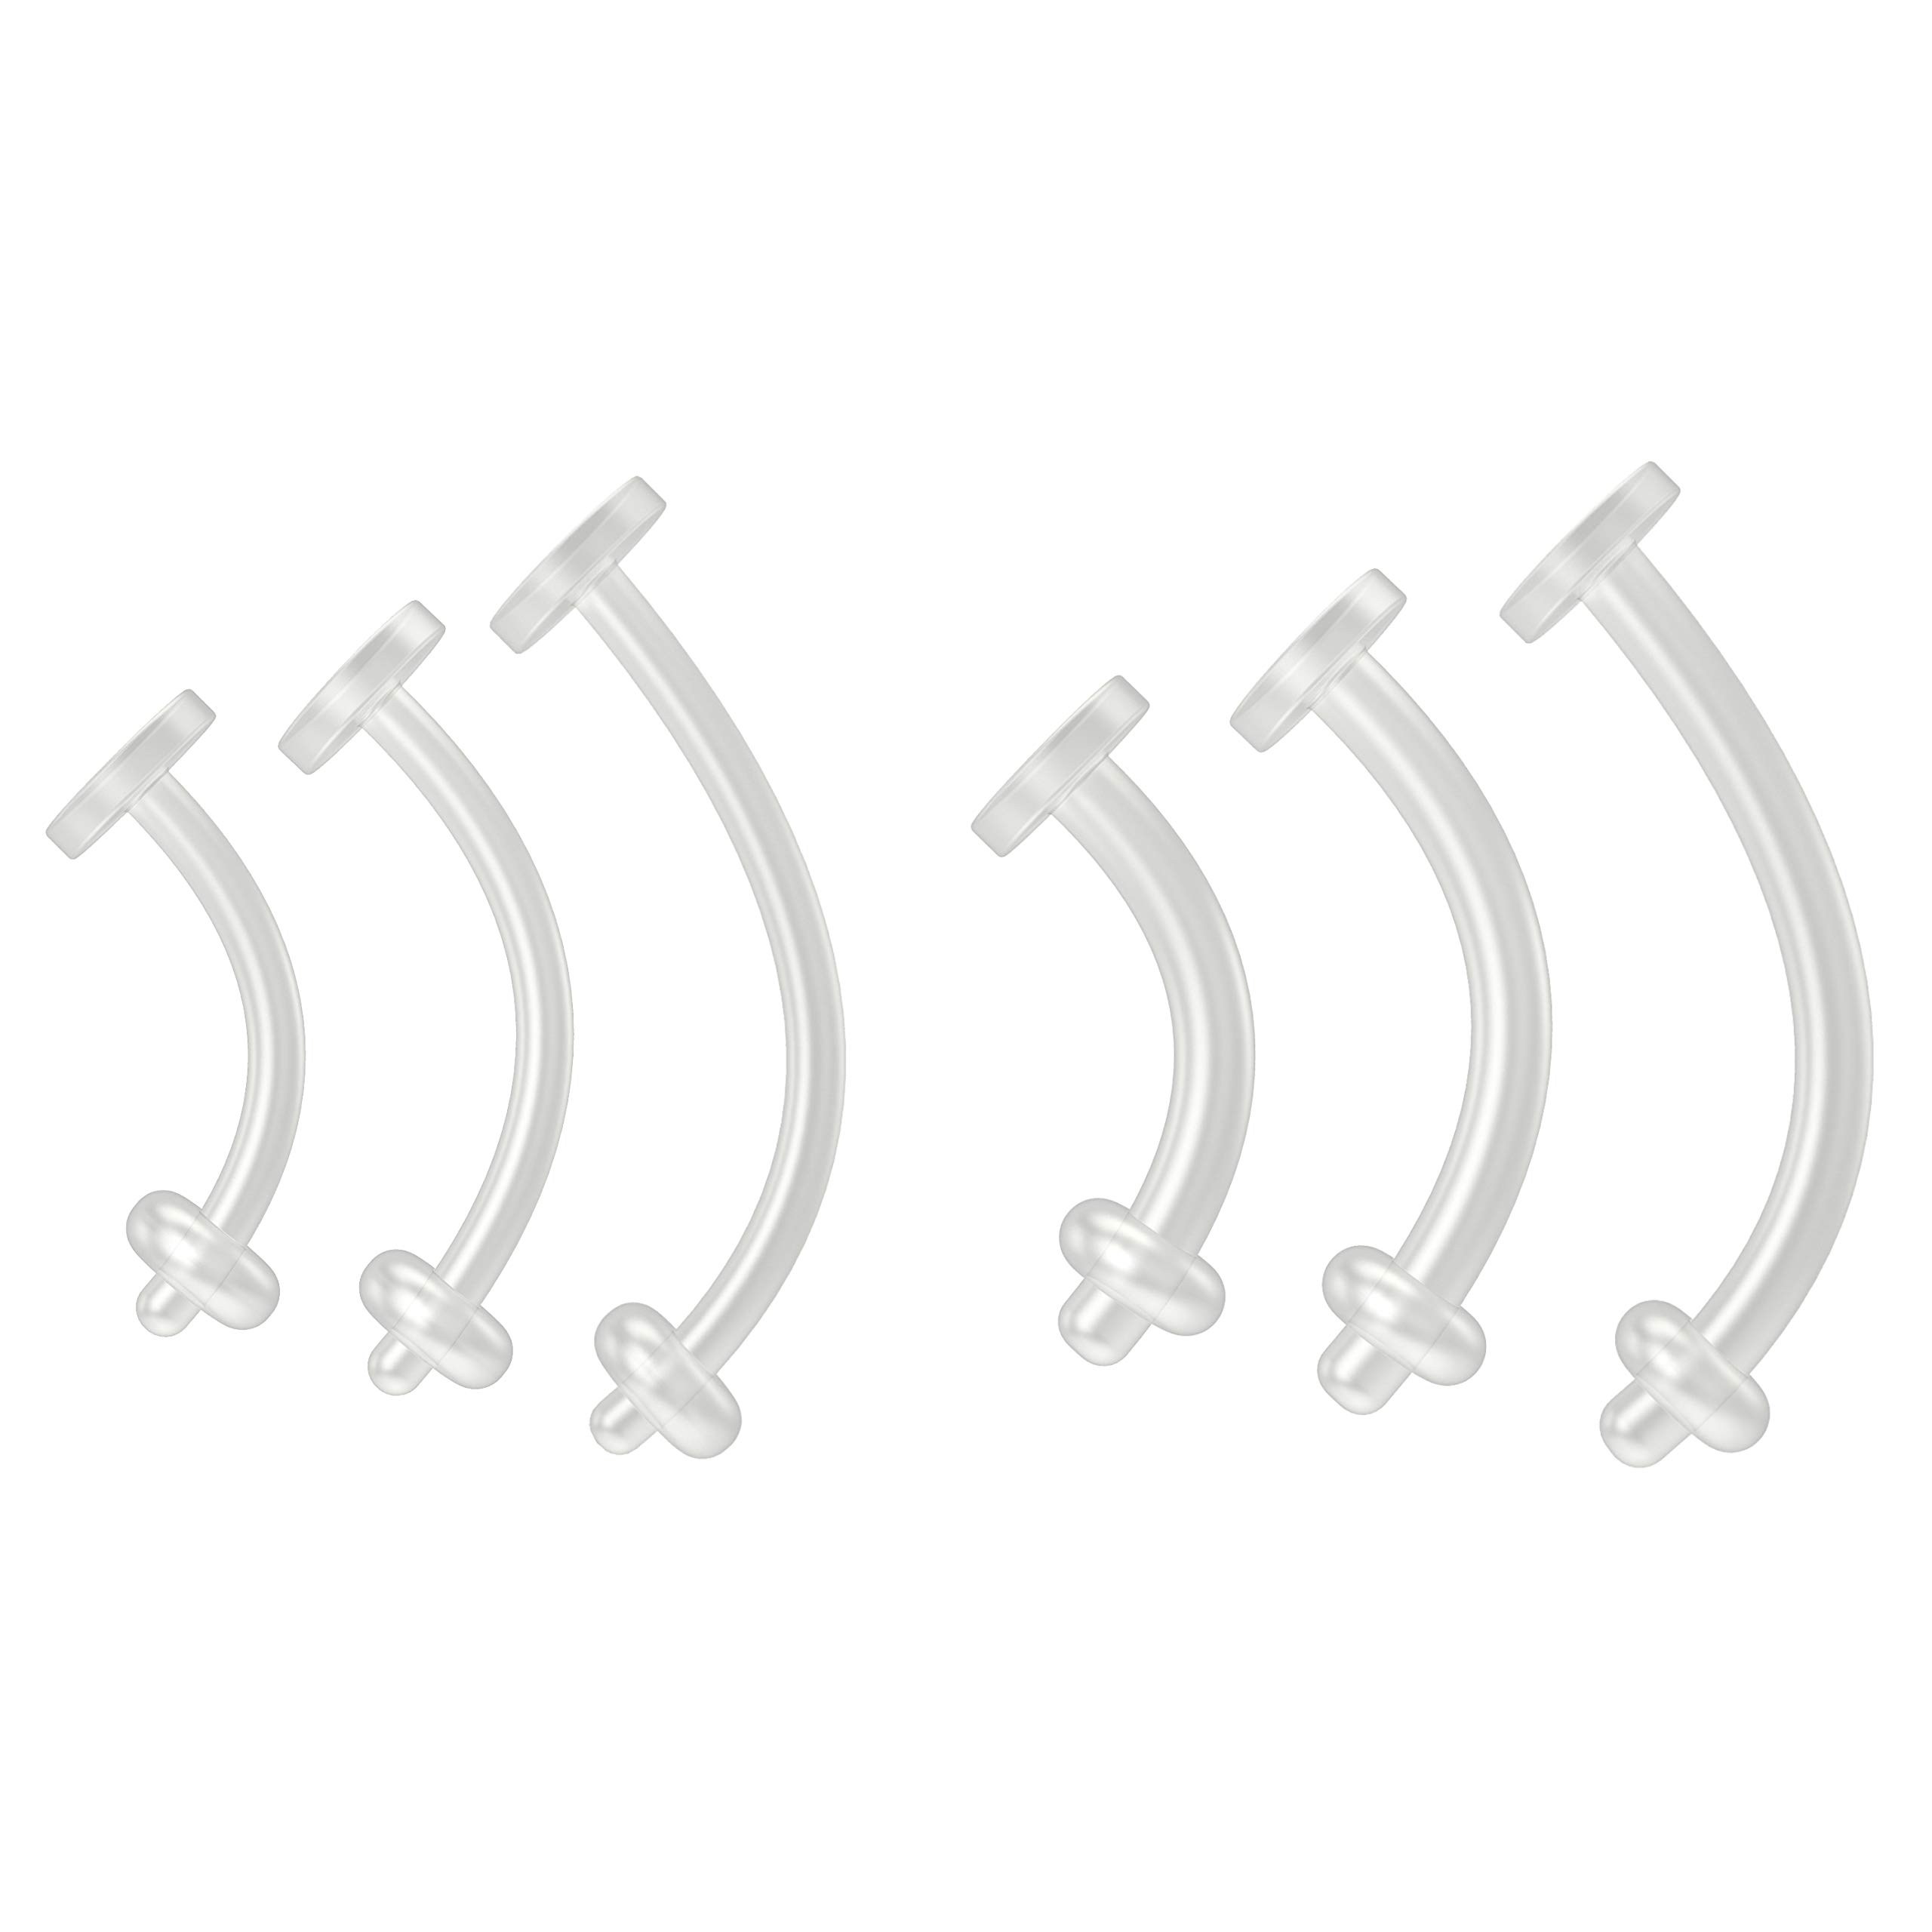 6pc 14g & 16g Flexible Belly Button Retainer Ring Clear Flexible Bioflex Bar Set - 8mm 10mm 12mm by Bling Piercing